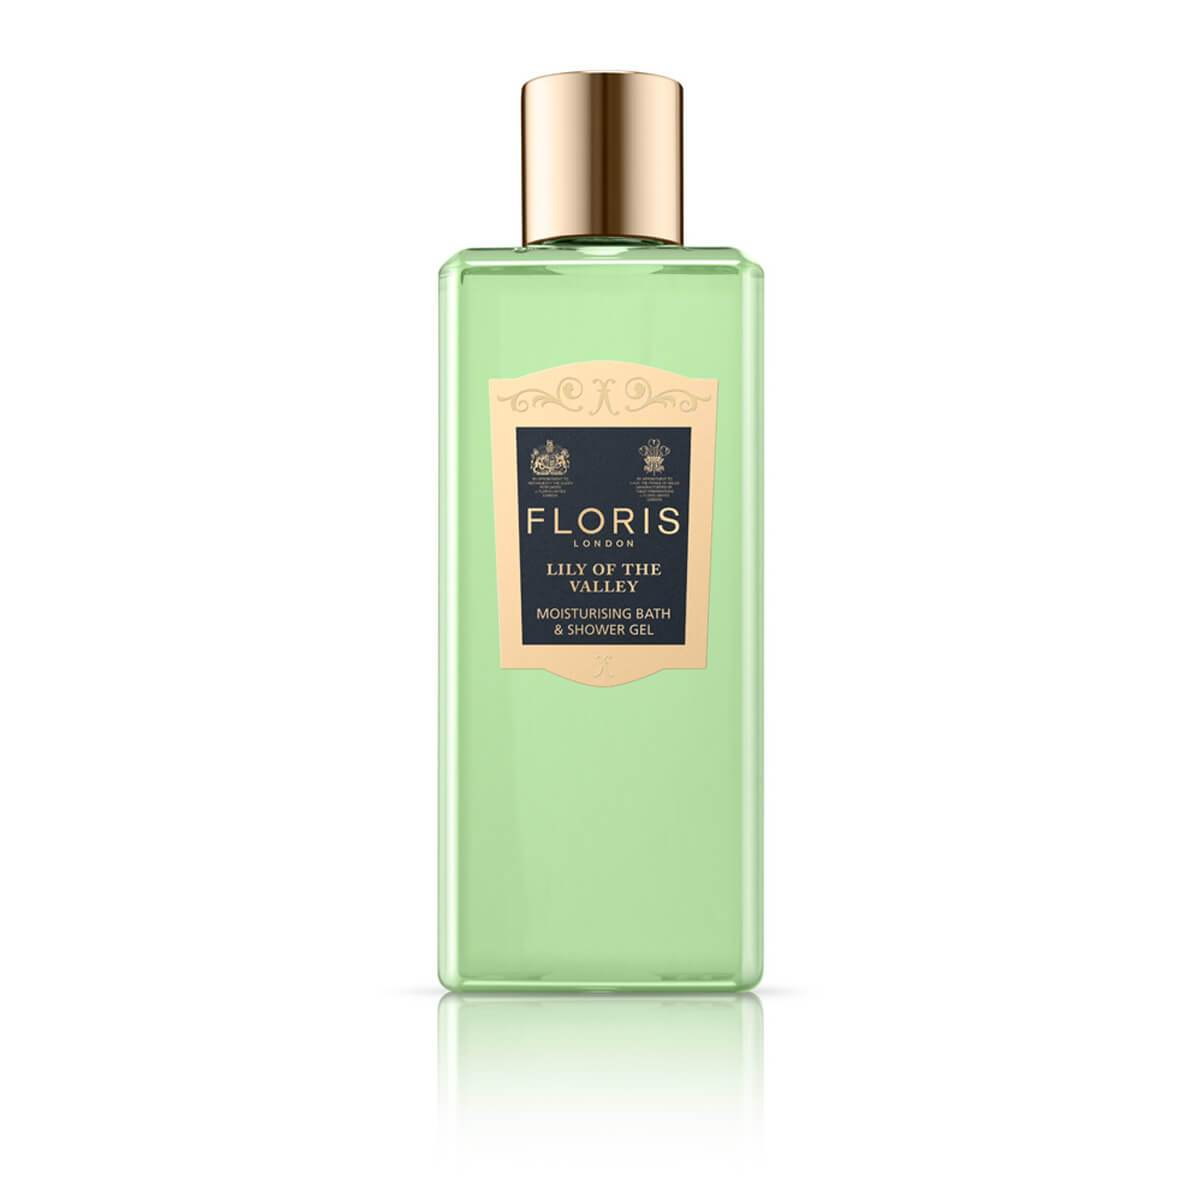 Lily of the Valley - Moisturising Bath & Shower Gel